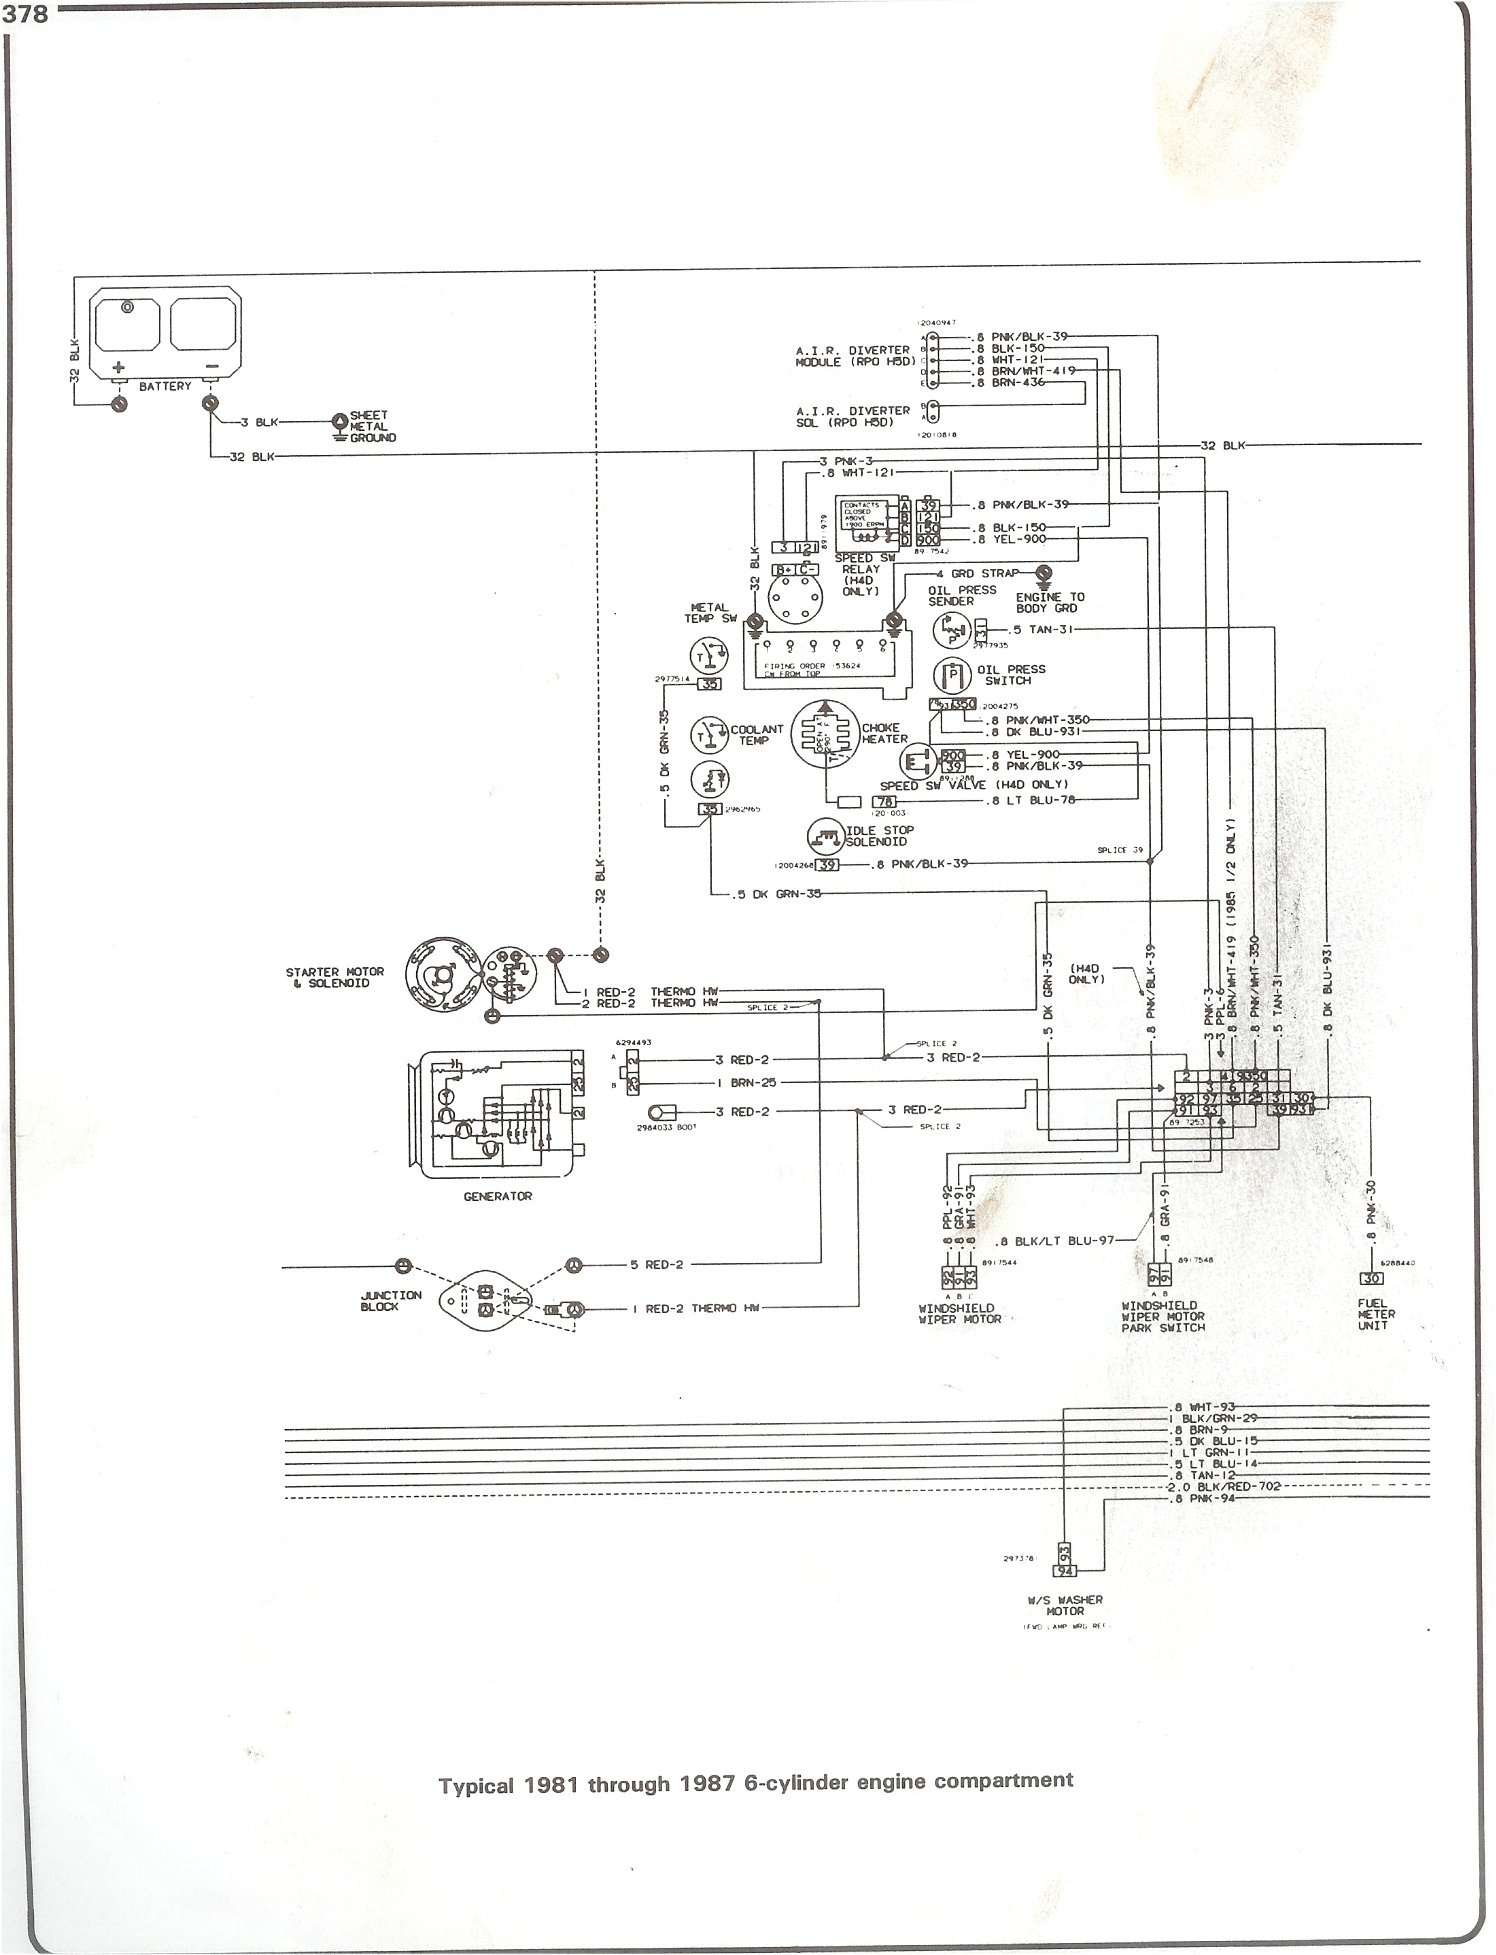 complete 73 87 wiring diagrams rh forum 73 87chevytrucks com 93 Chevy Suburban Wiring Diagram 2004 Chevy Suburban Wiring Diagram